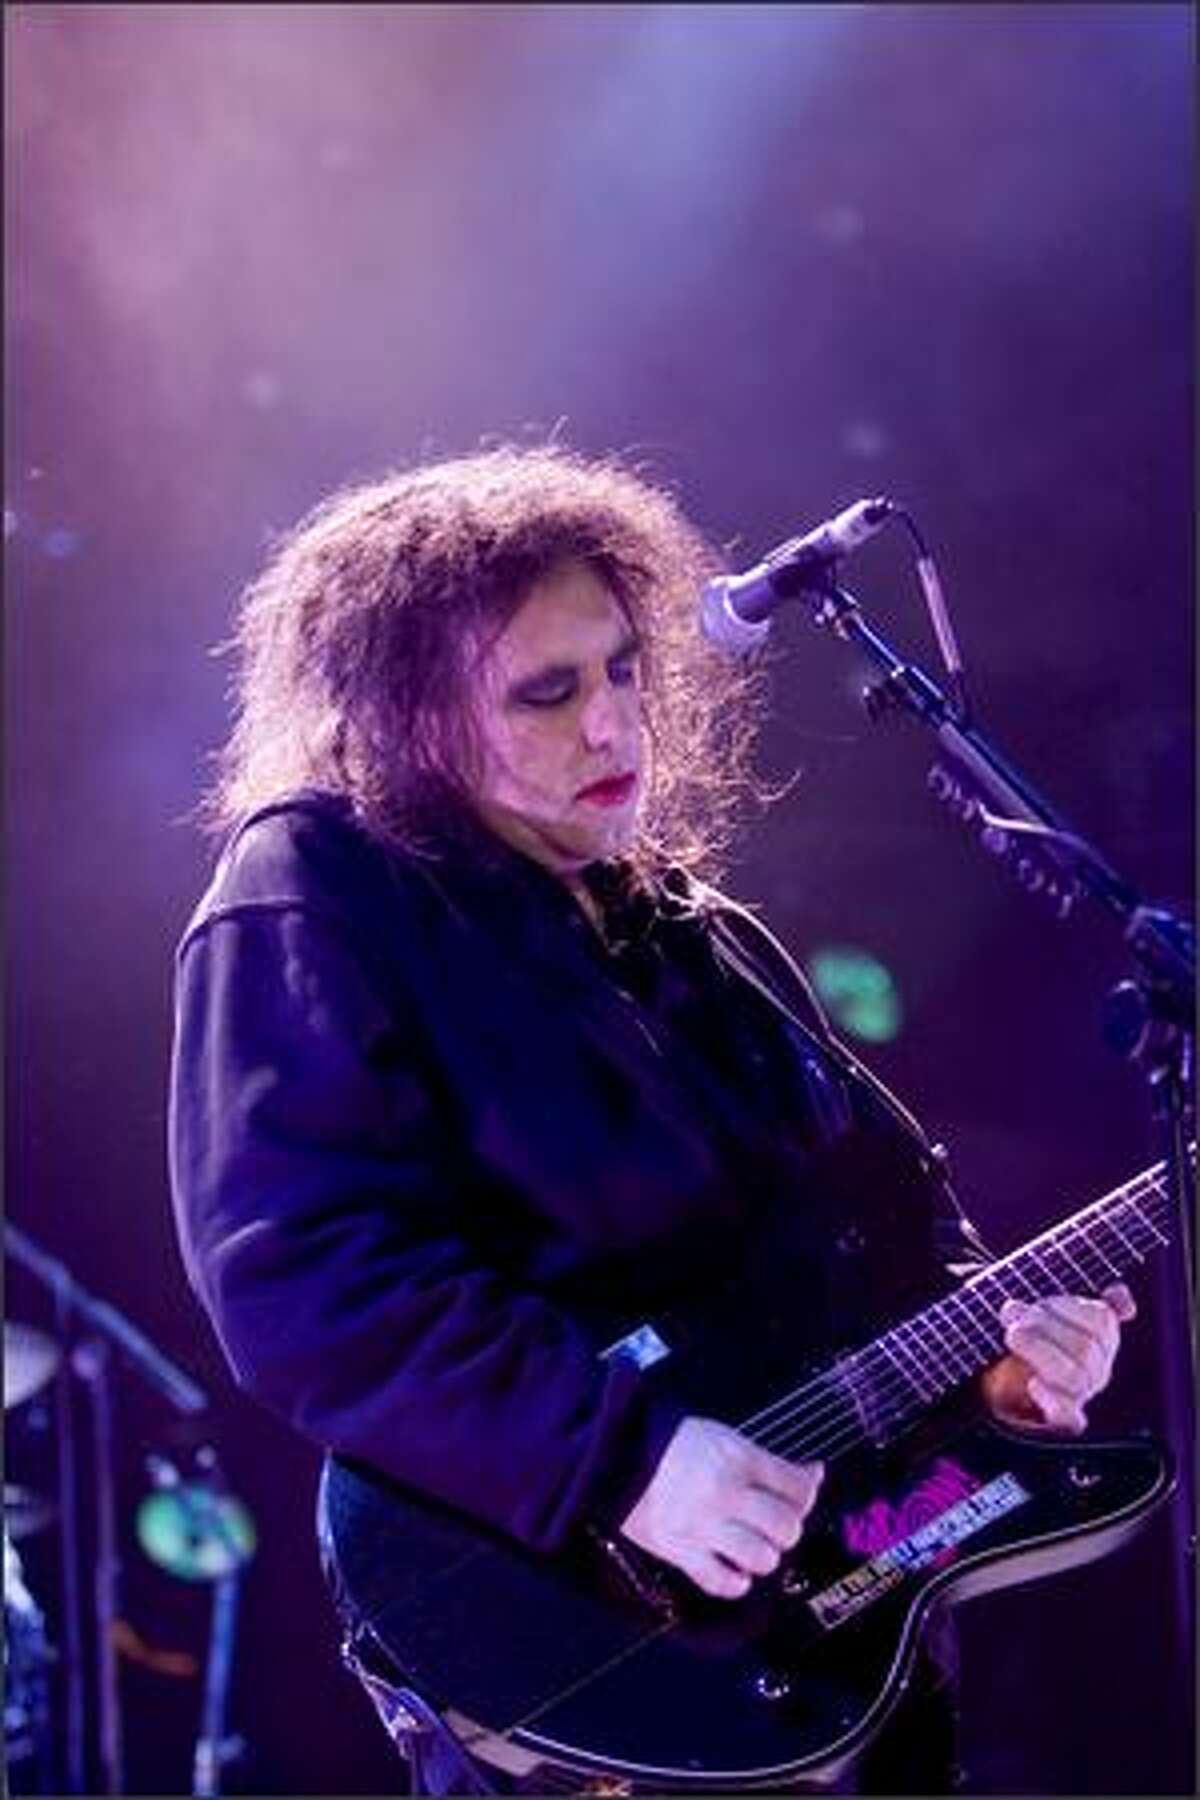 Robert Smith of The Cure performs at the Sasquatch Music Festival on Saturday.